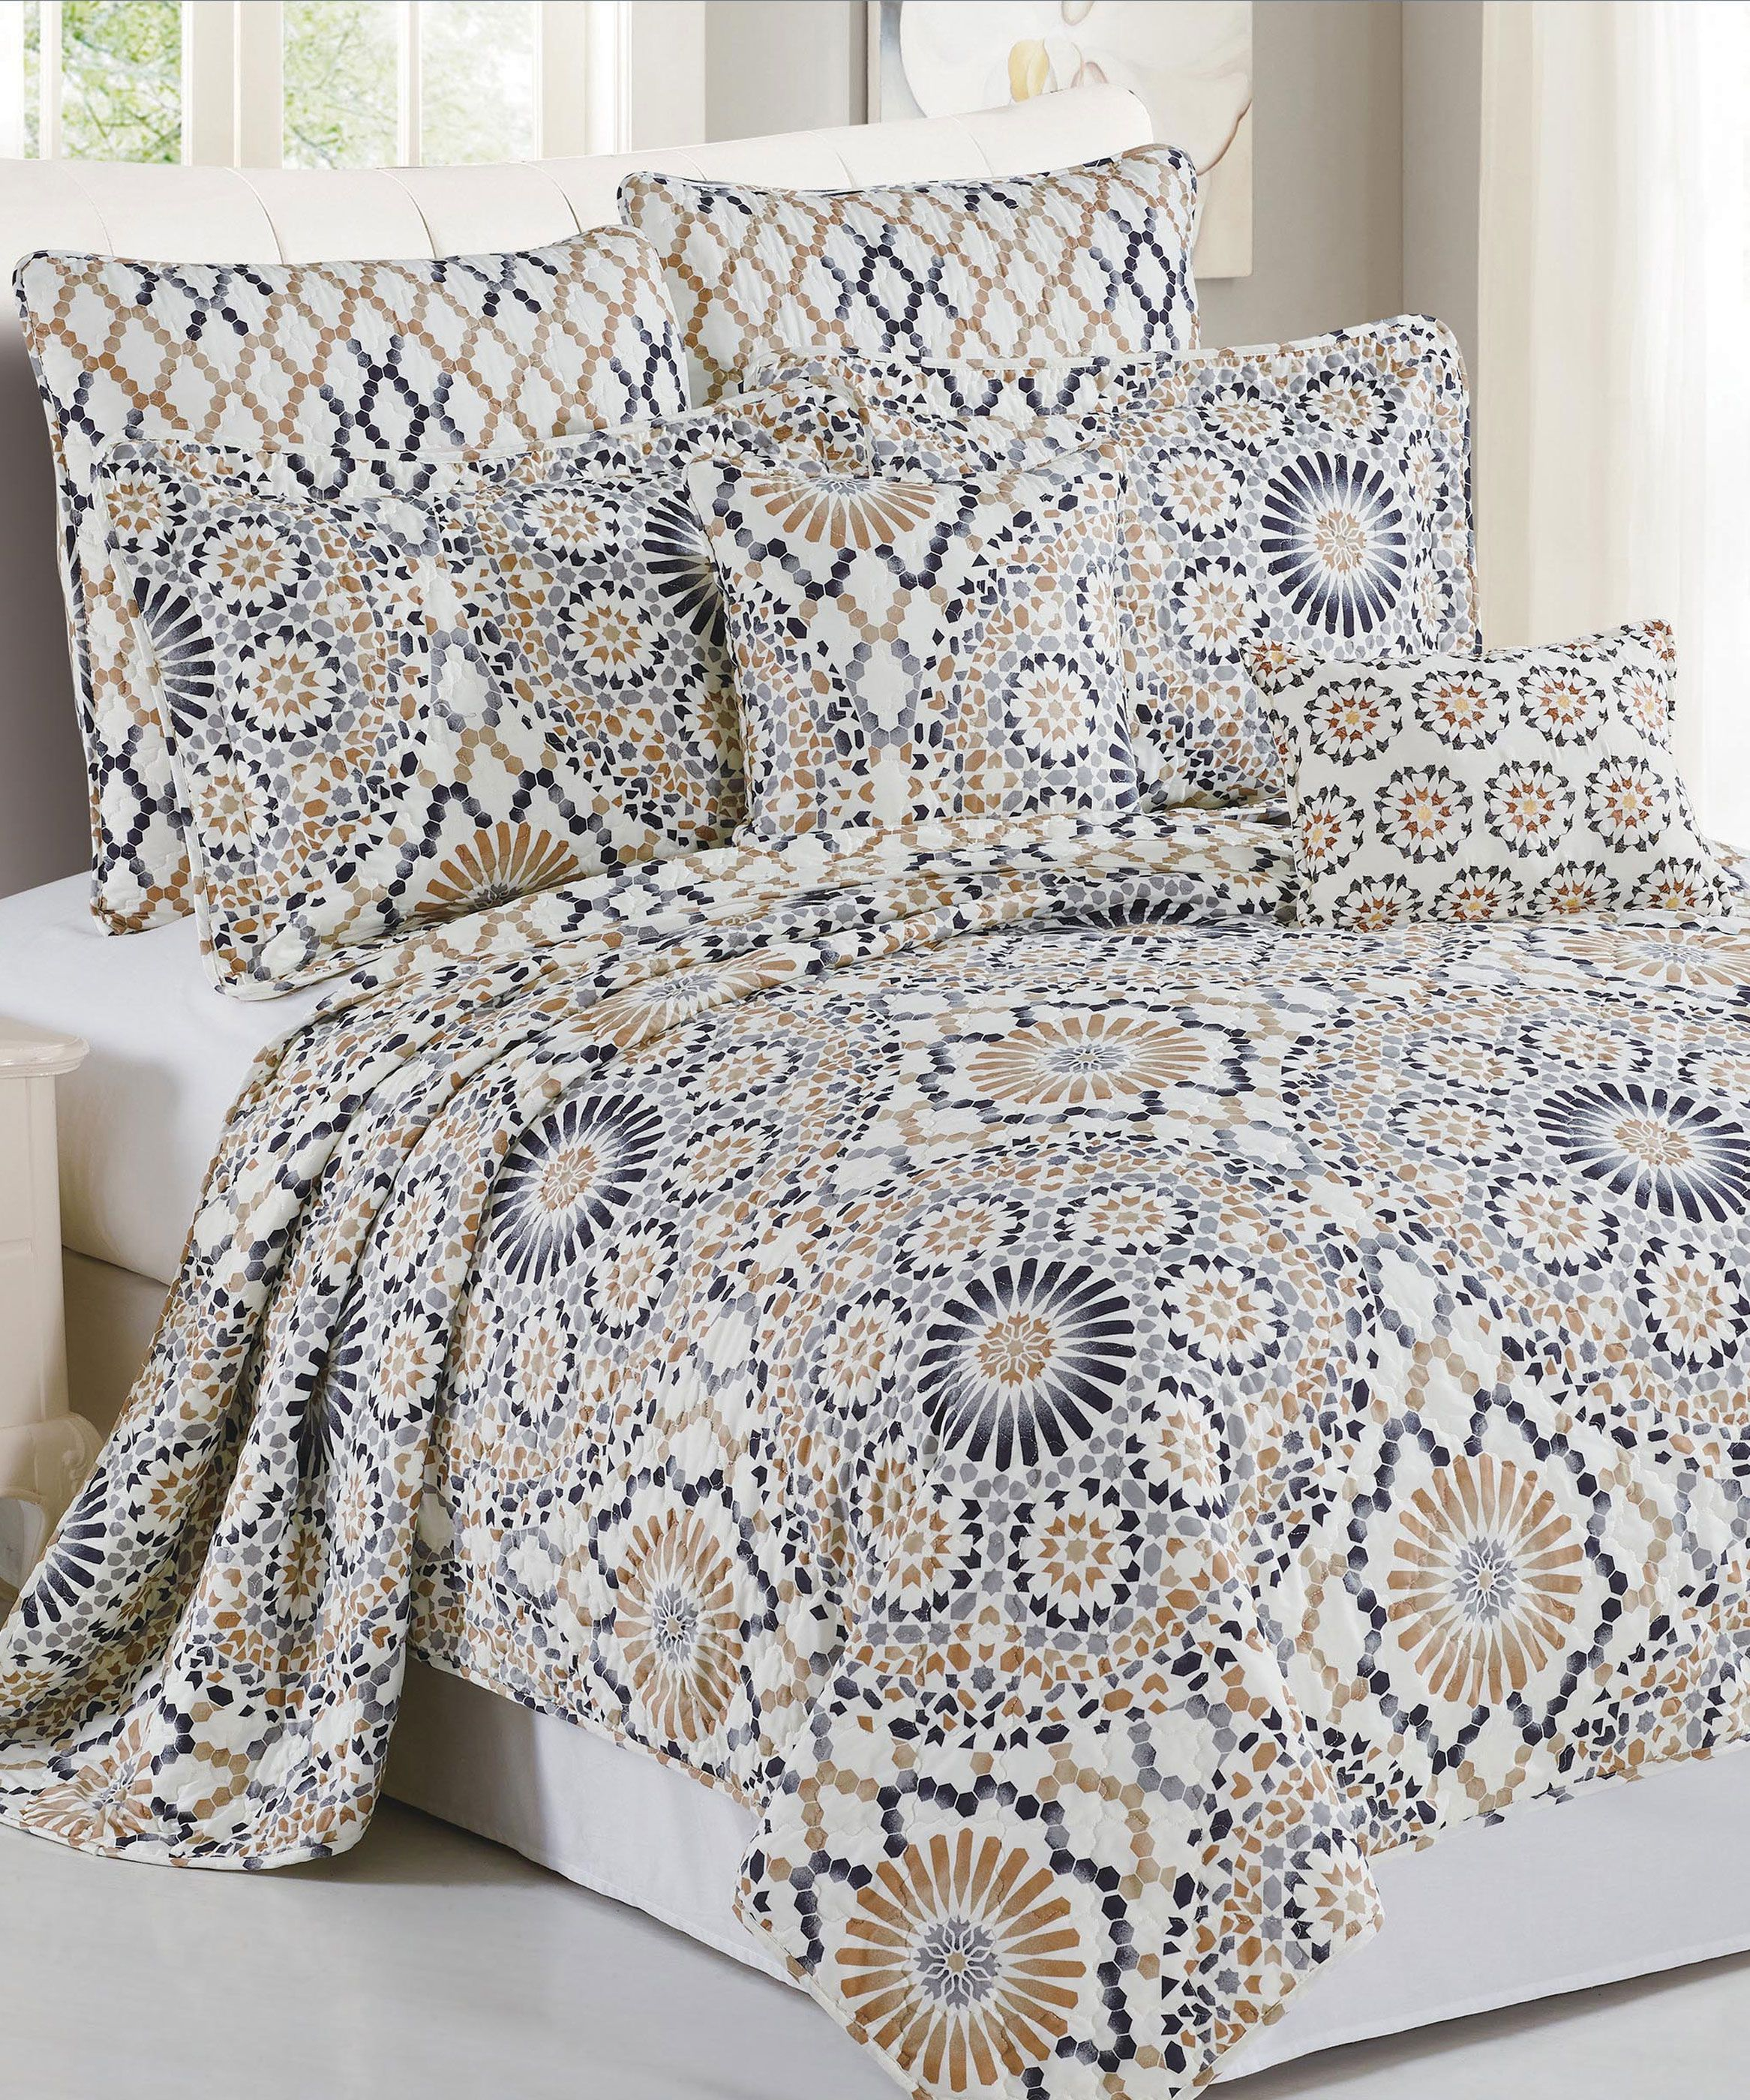 Pin On Complete 7 Piece Bed Spread Sets